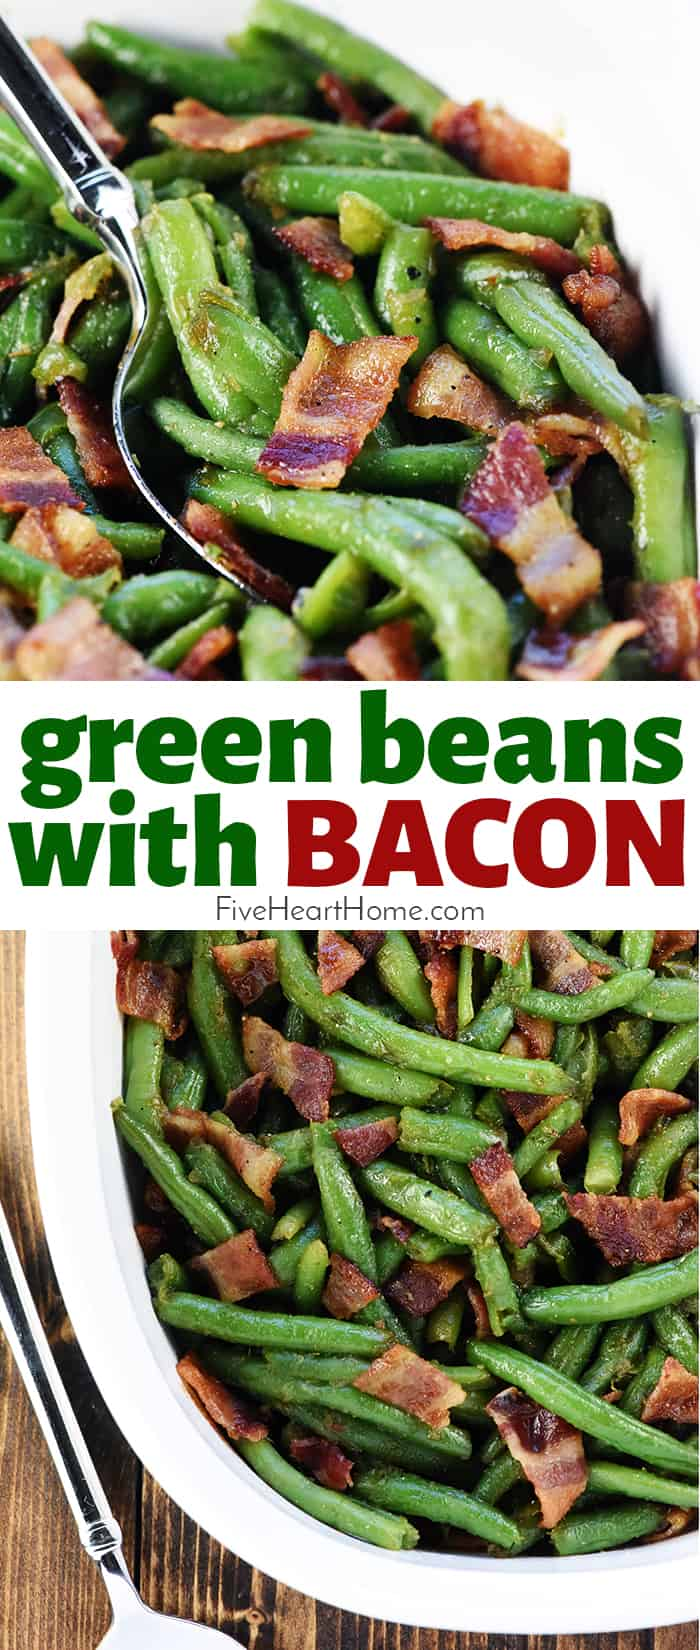 Green Beans with Bacon ~ a delicious green bean casserole that makes a perfect holiday side dish recipe, featuring fresh green beans and crispy bacon in a sweet & savory brown sugar glaze! | FiveHeartHome.com via @fivehearthome